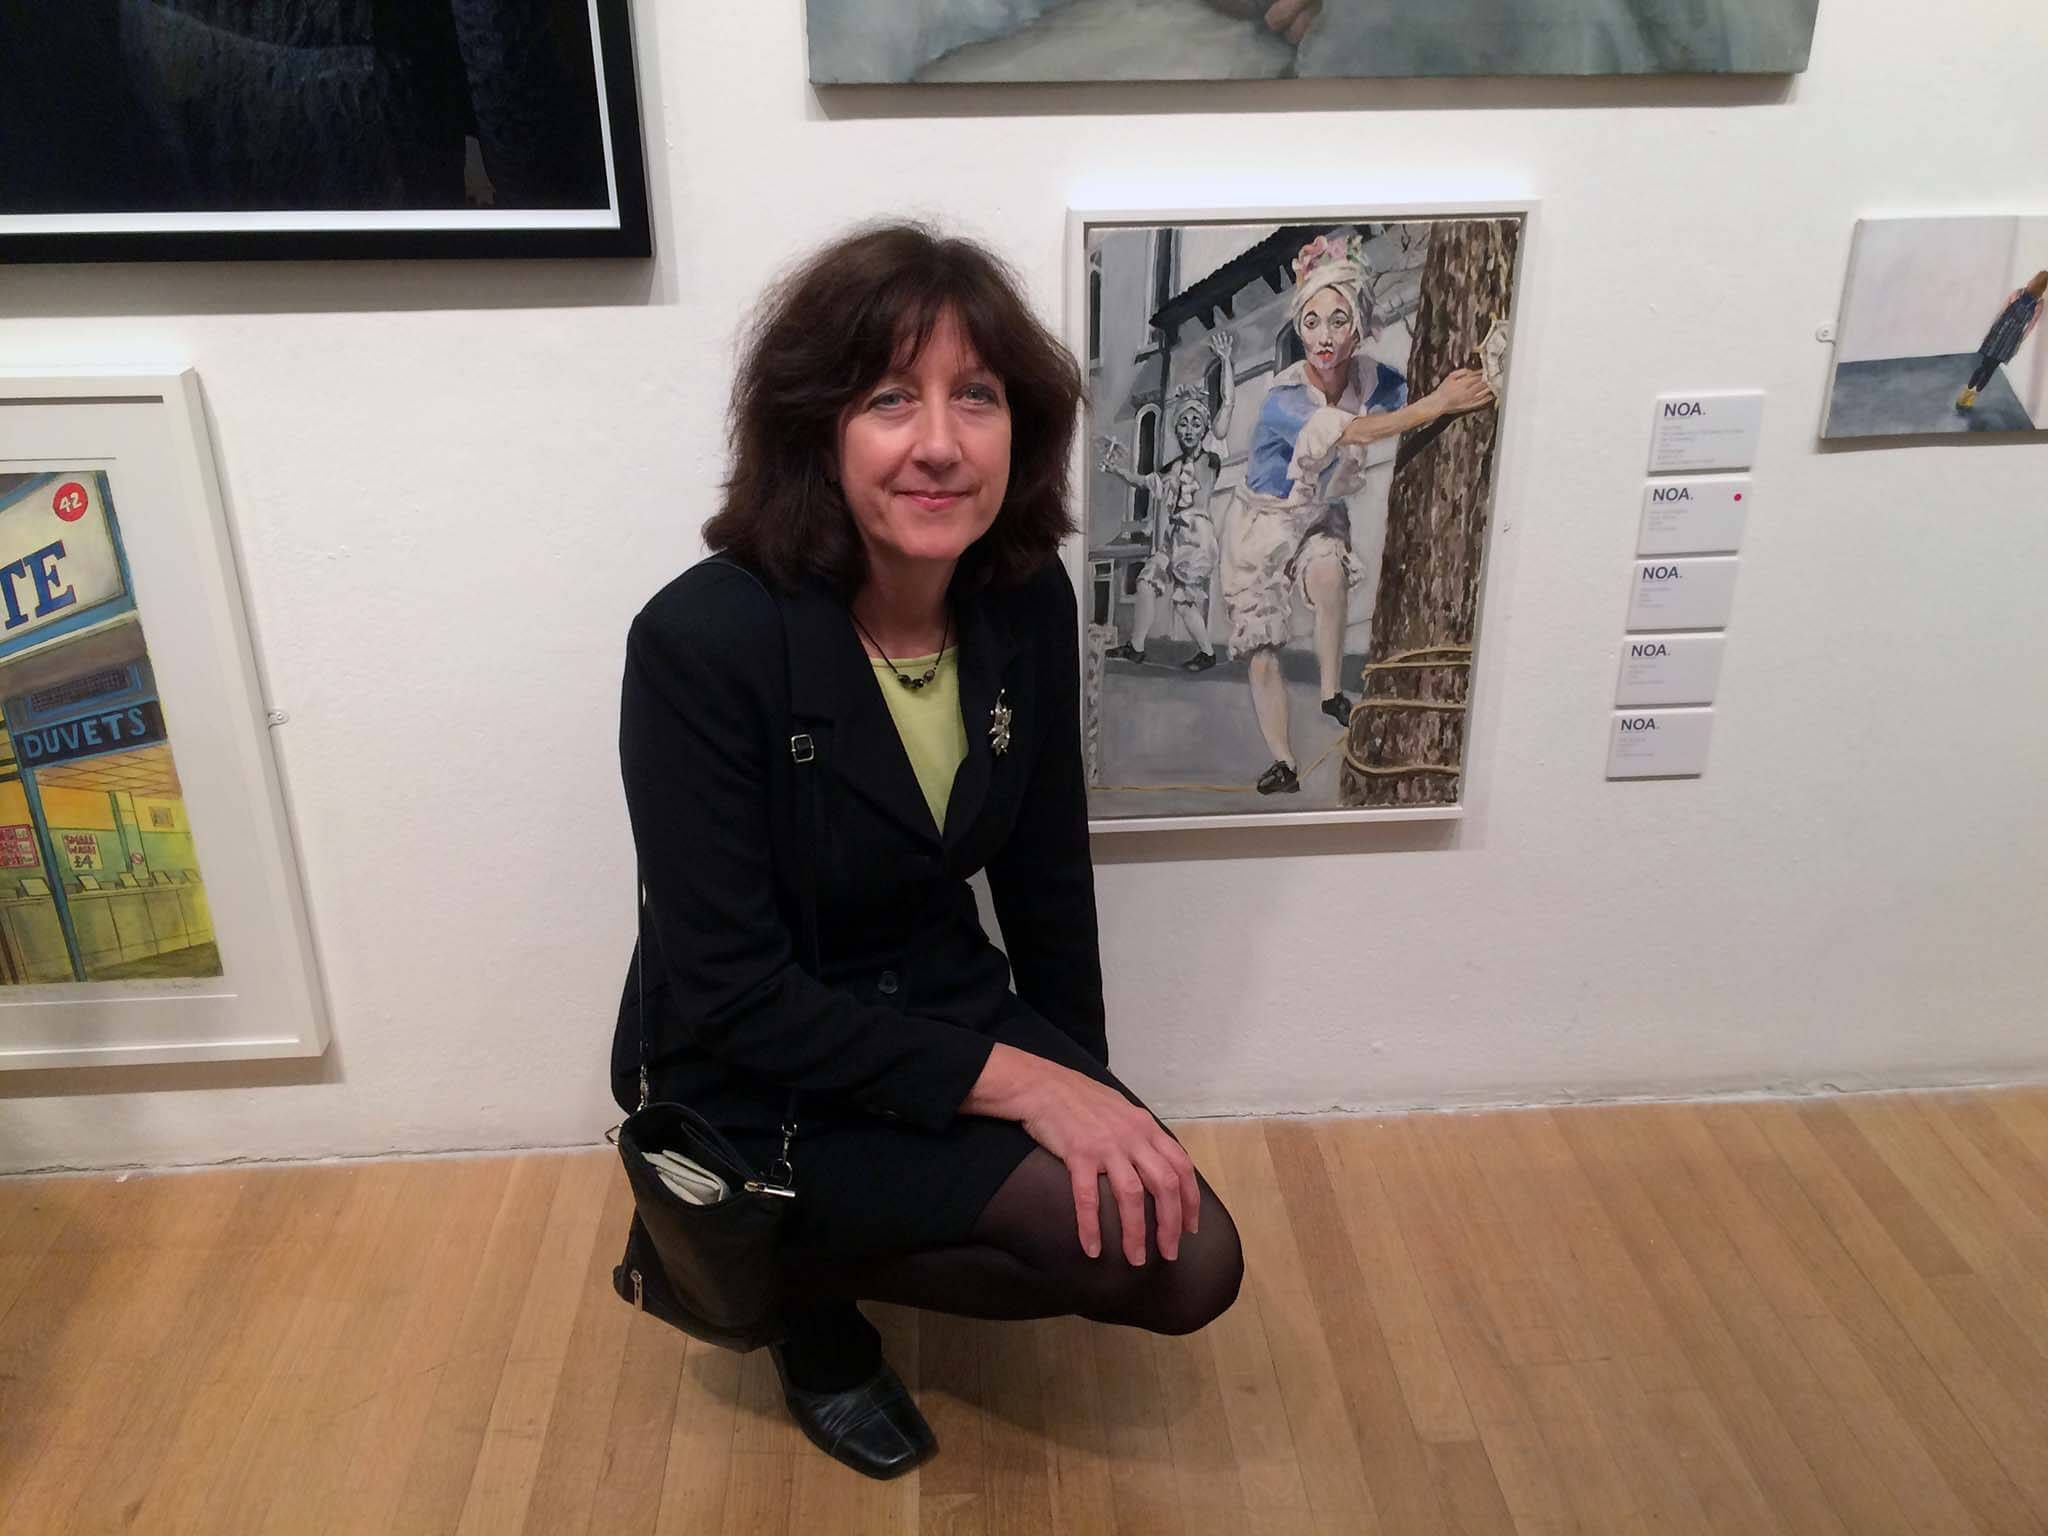 Artist Stella Tooth with her portrait of The tightrope walker at NOA 2015 at the RCA.